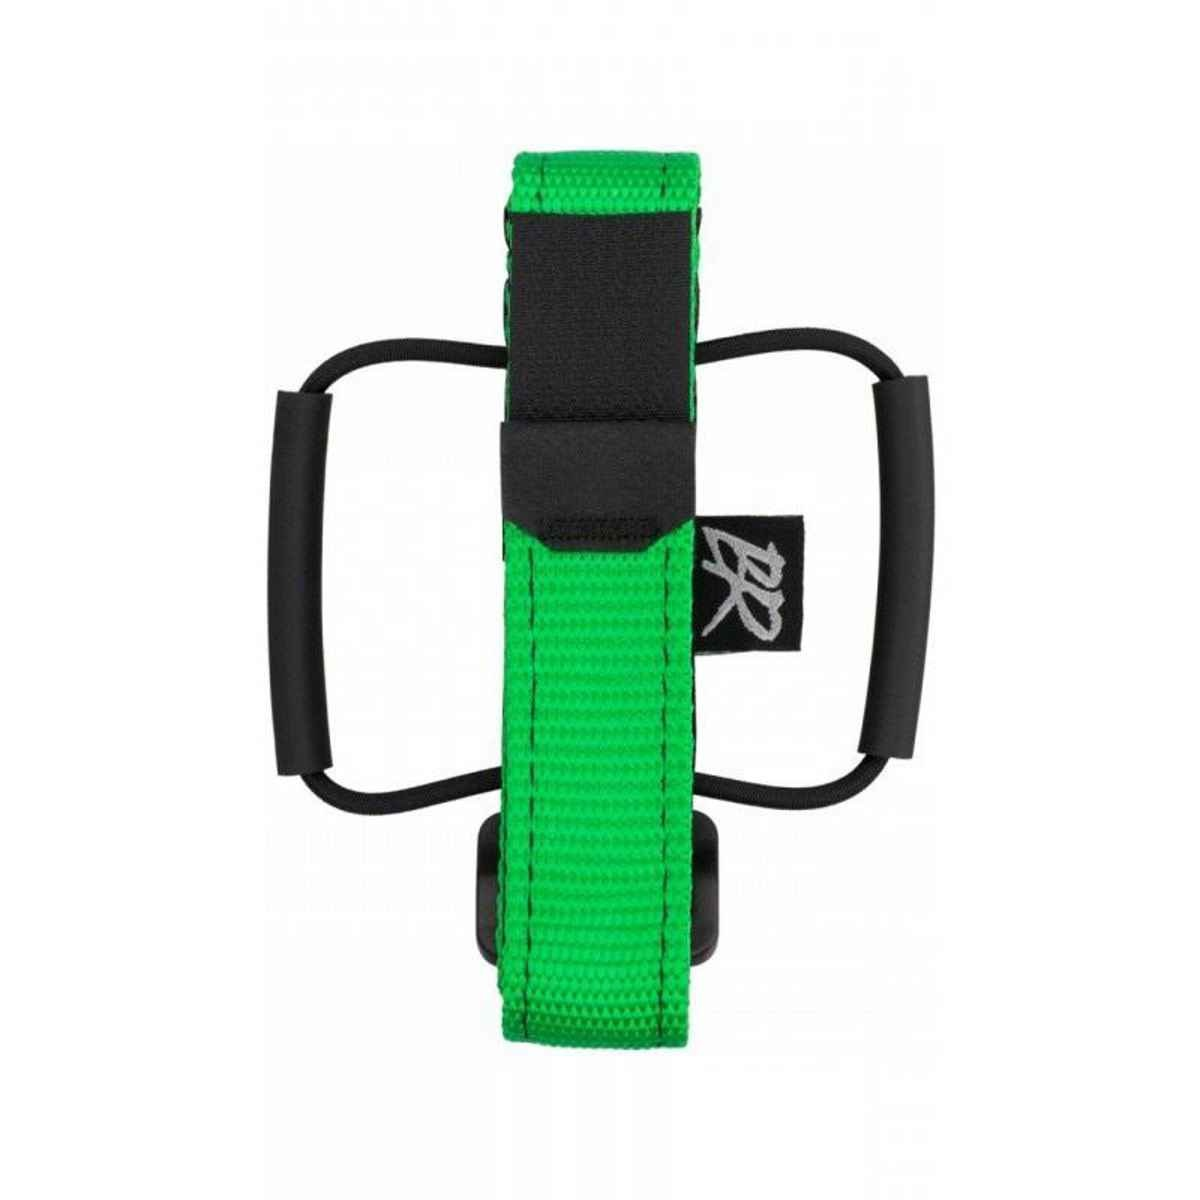 Backcountry Research Mutherload Frame Strap - Hot Lime